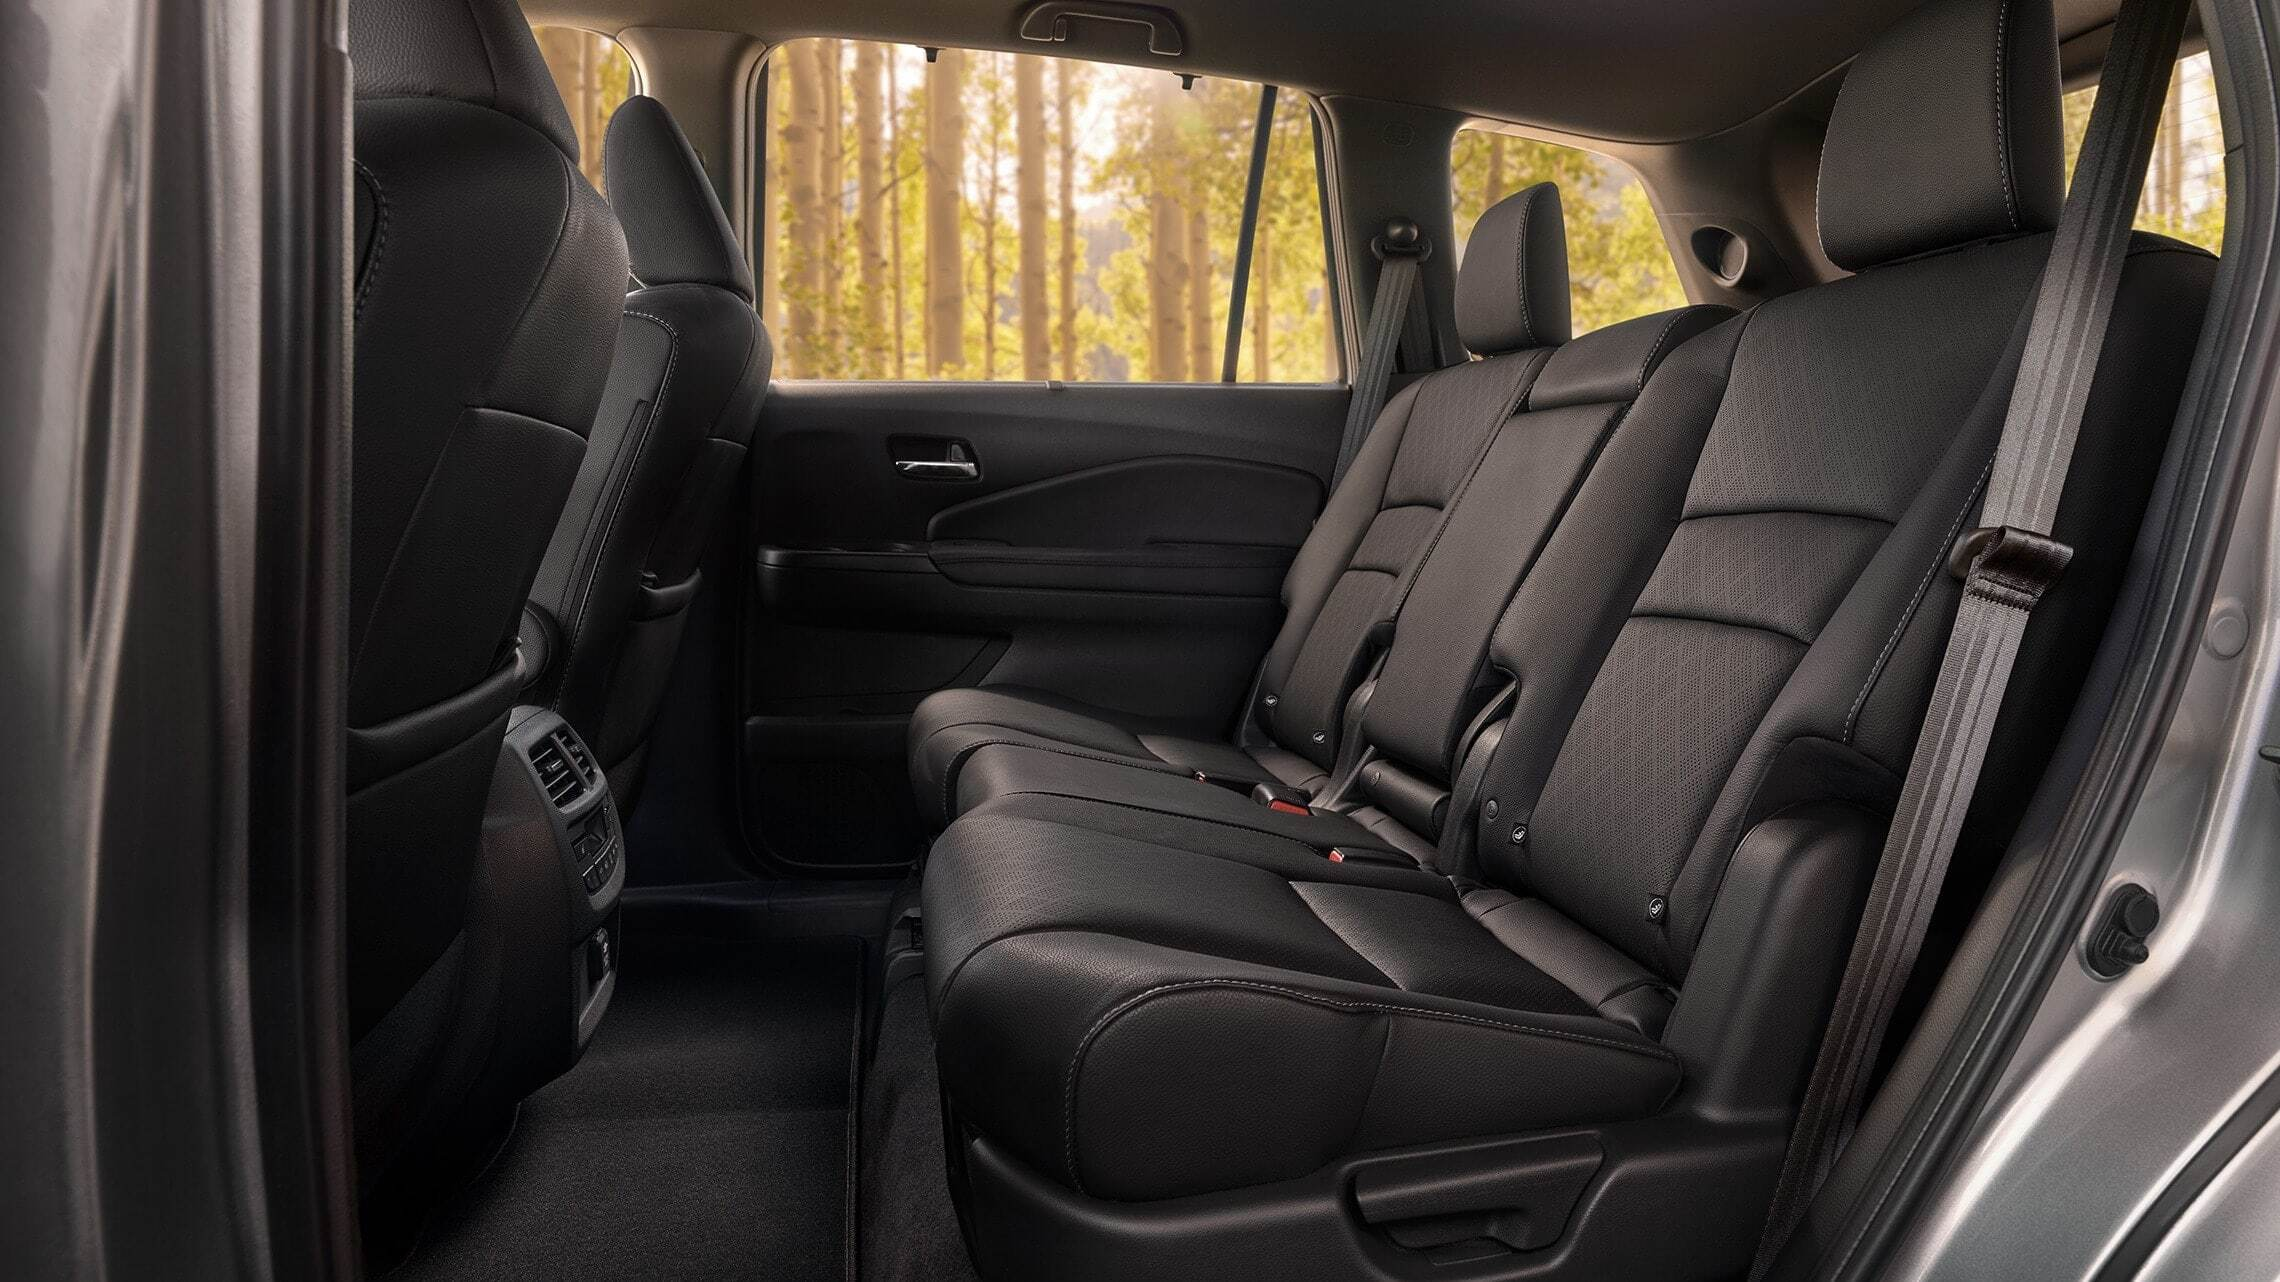 Honda Passport Spacious rear seats